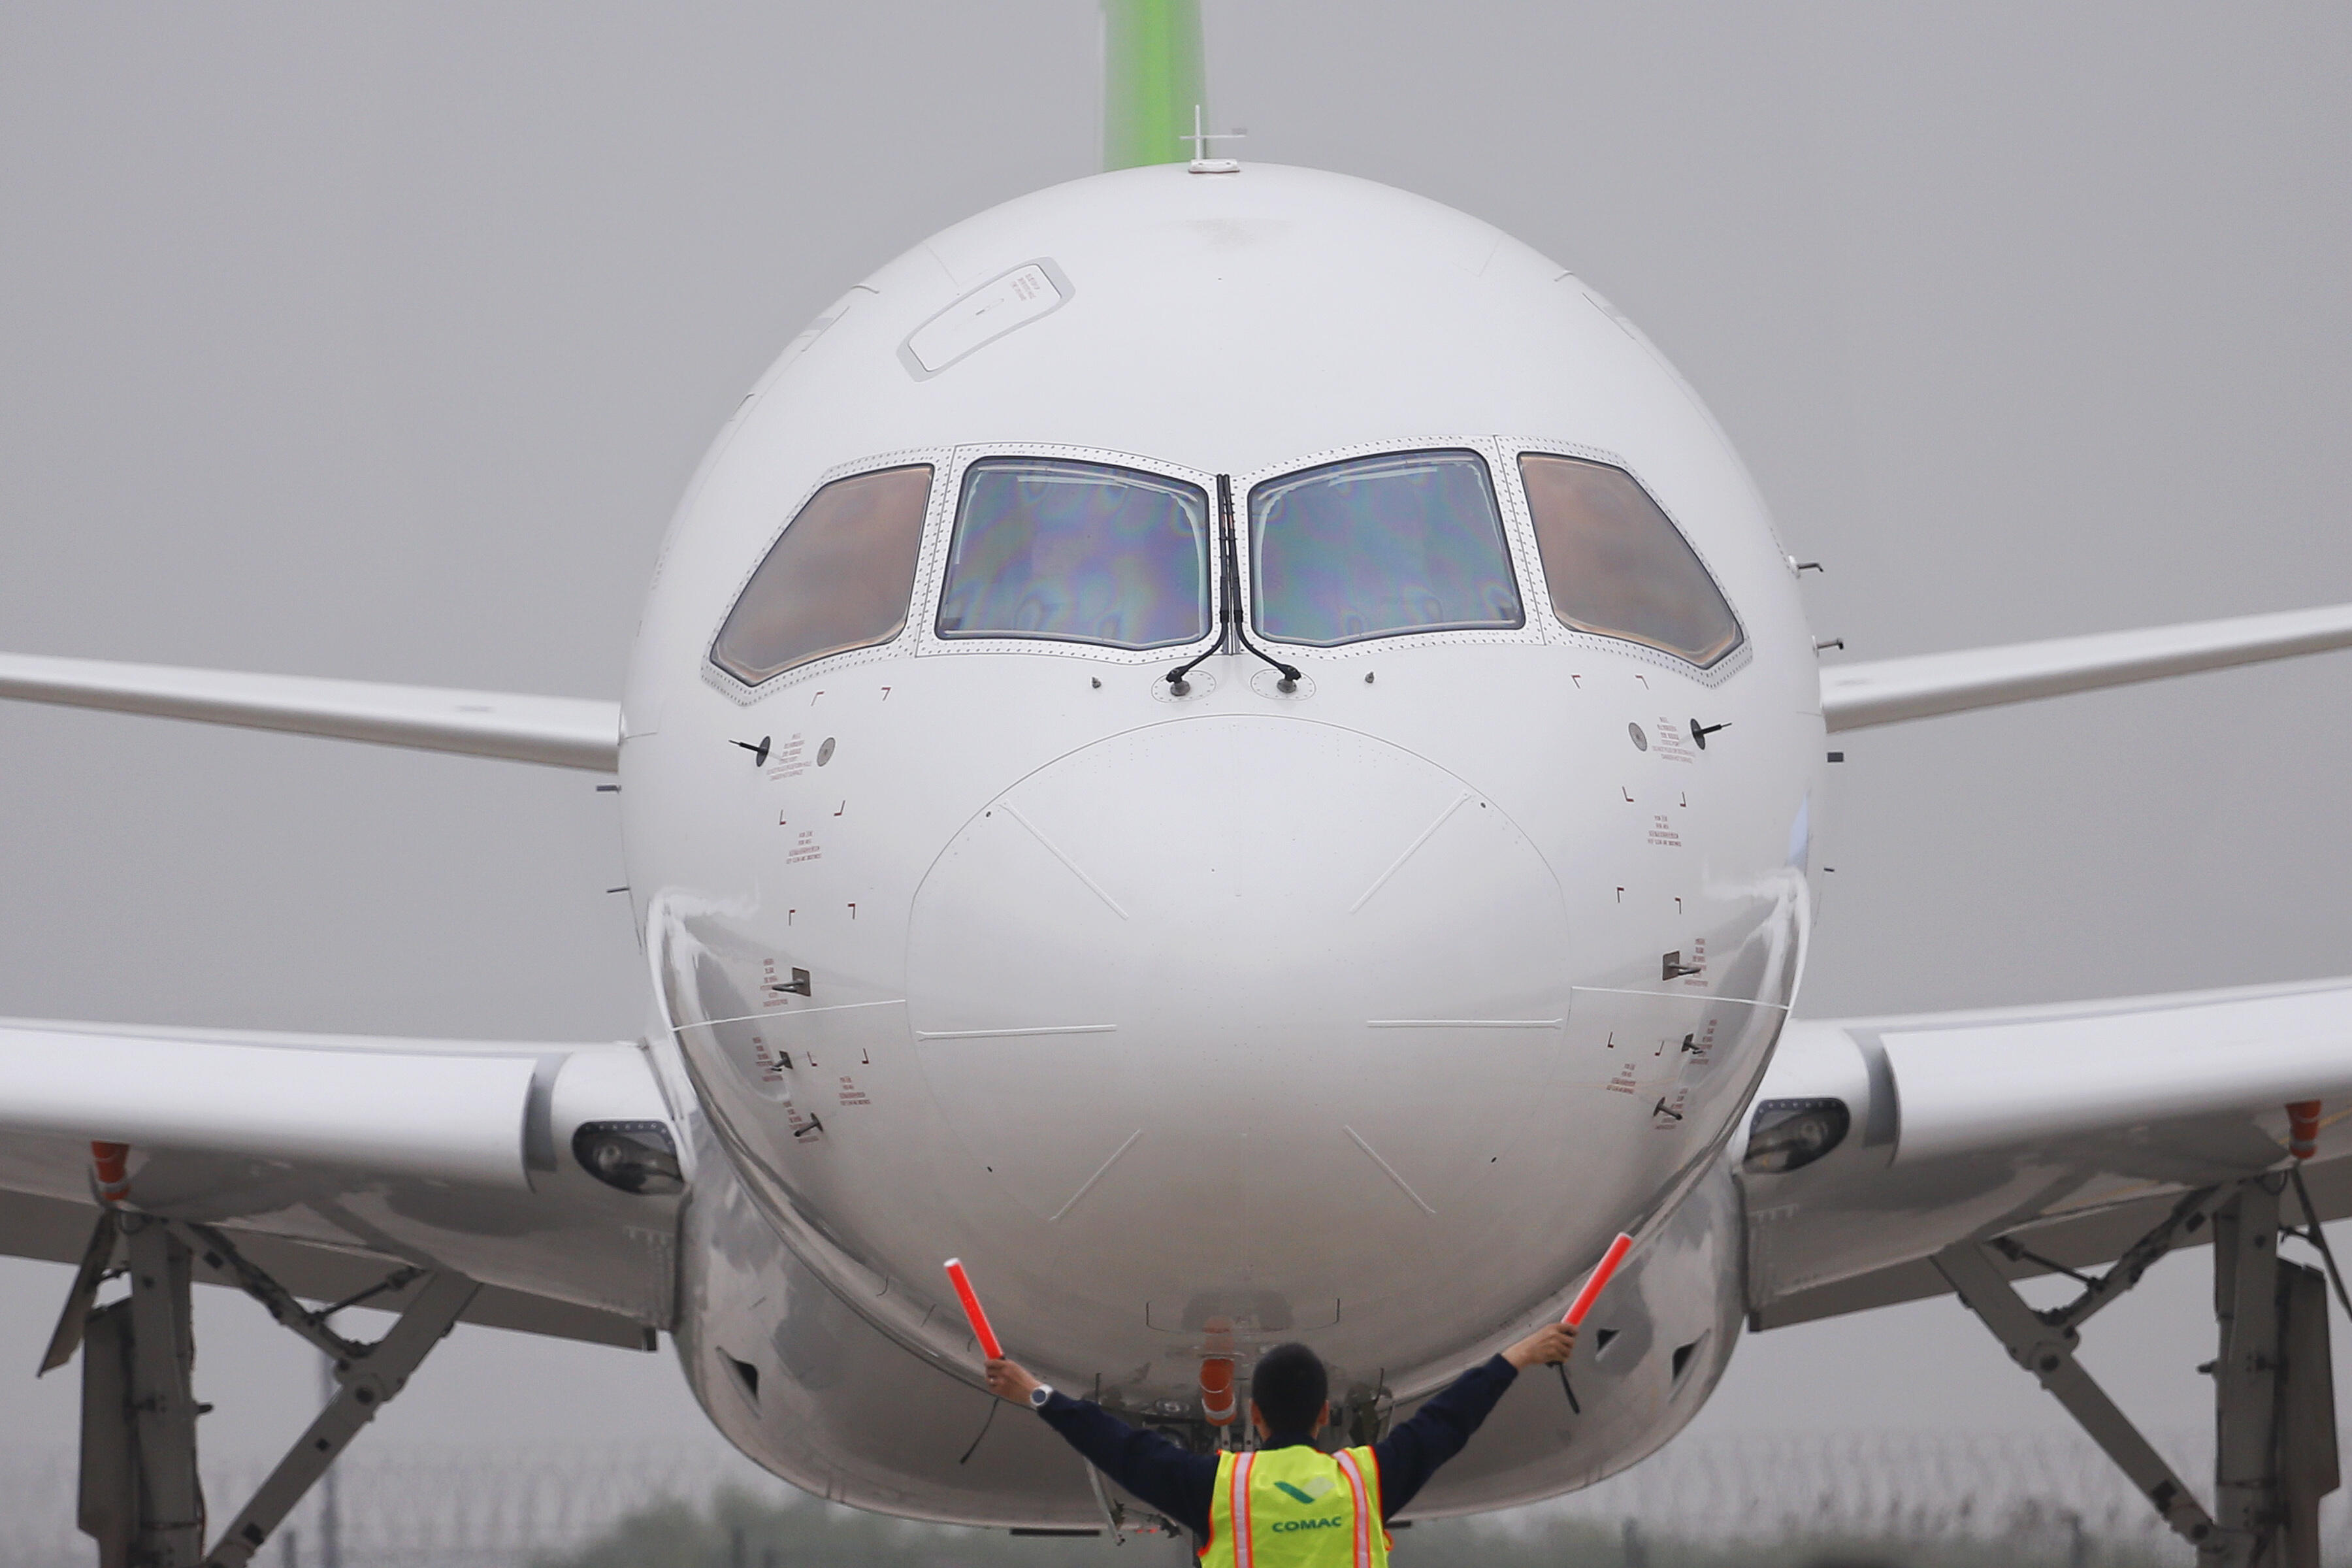 A member of staff signals in front of China's home-grown C919 passenger jet after it landed on its maiden flight at Pudong International Airport in Shanghai on May 5, 2017. The first large made-in-China passenger plane took off on its maiden test flight o